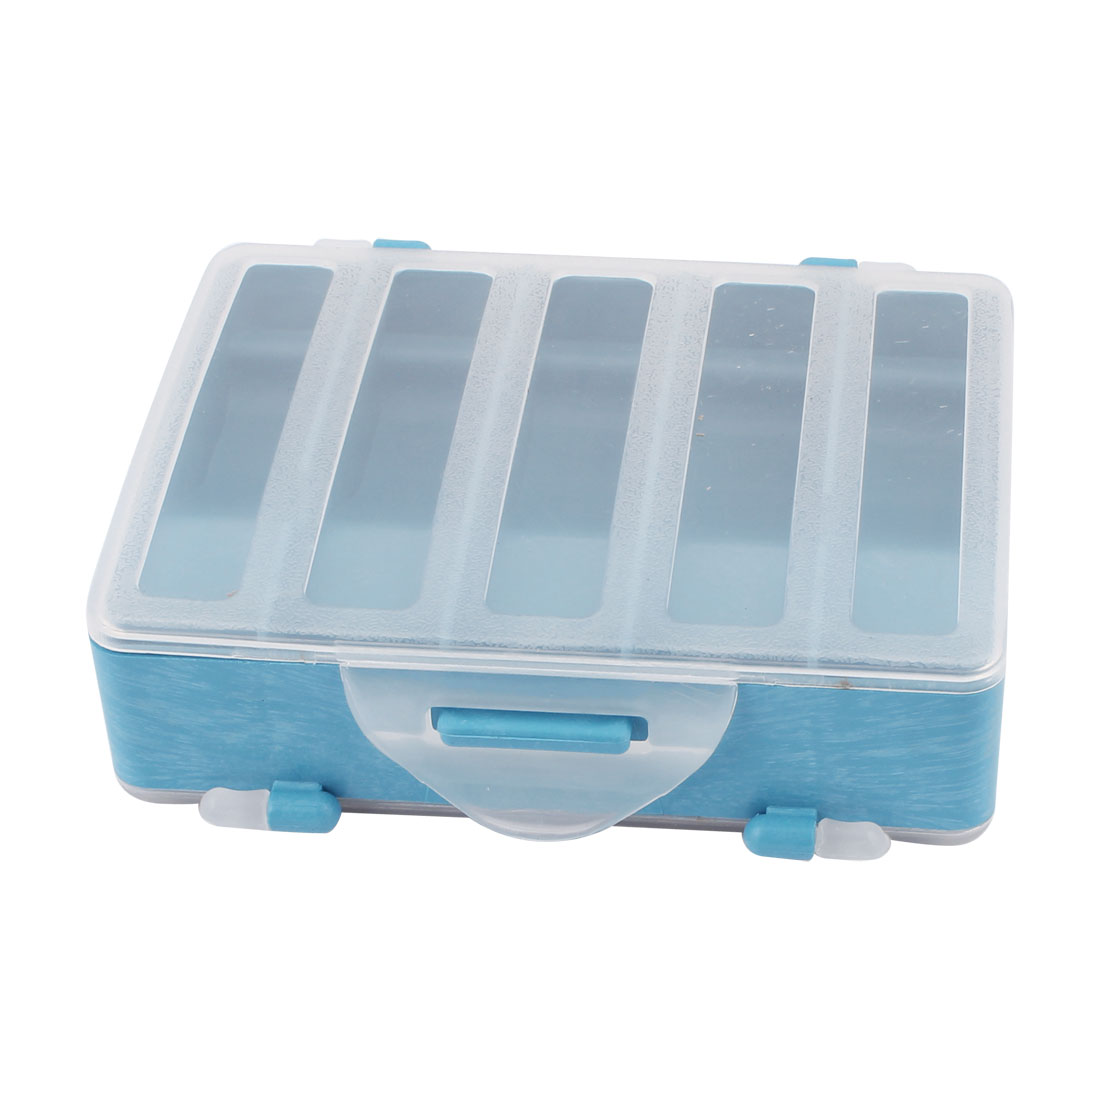 Unique Bargains Double Sides 10 Compartments Fishing Tackle Box Hook Lure Case by